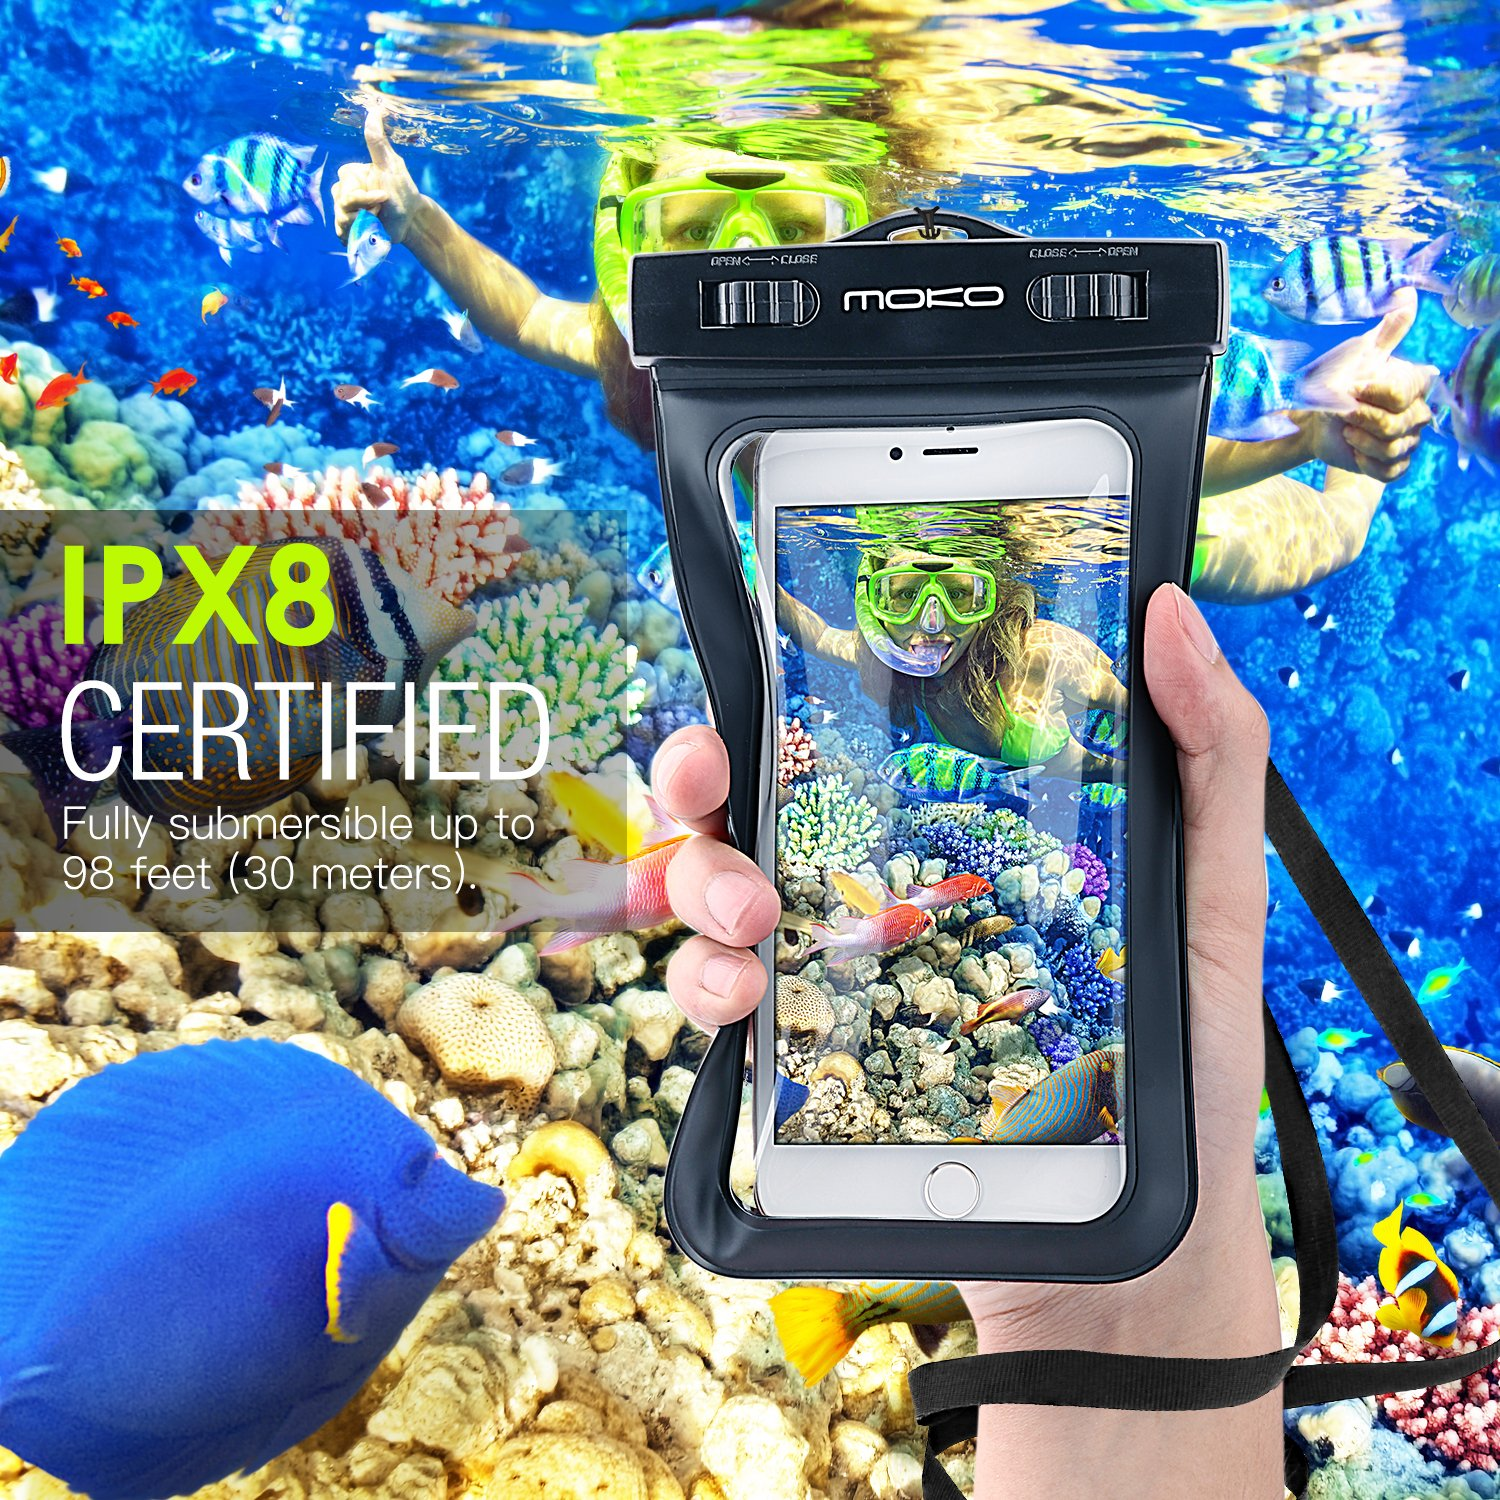 MoKo Waterproof Phone Pouch, Underwater Waterproof Cellphone Case Dry Bag with Lanyard Armband Compatible with iPhone X/Xs/Xr/Xs Max, 8/7/6s Plus, Samsung Galaxy S10/S9/S8 Plus, S10 e, S7 Edge, Black by MoKo (Image #2)